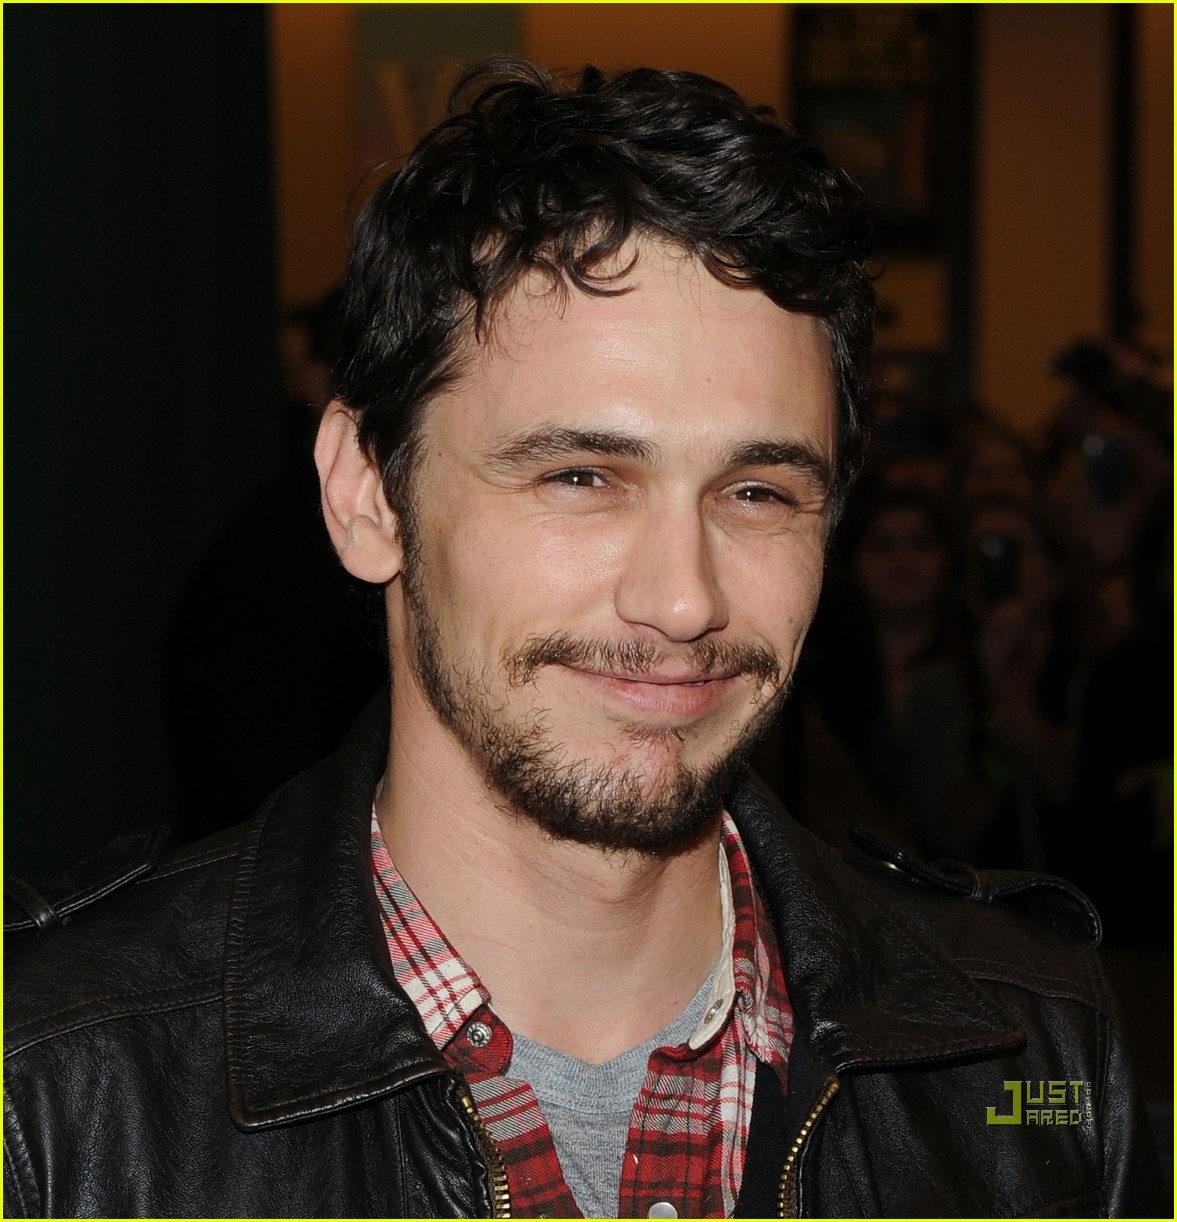 James Franco Palo Alto Signing In Nyc Photo 2489200 border=